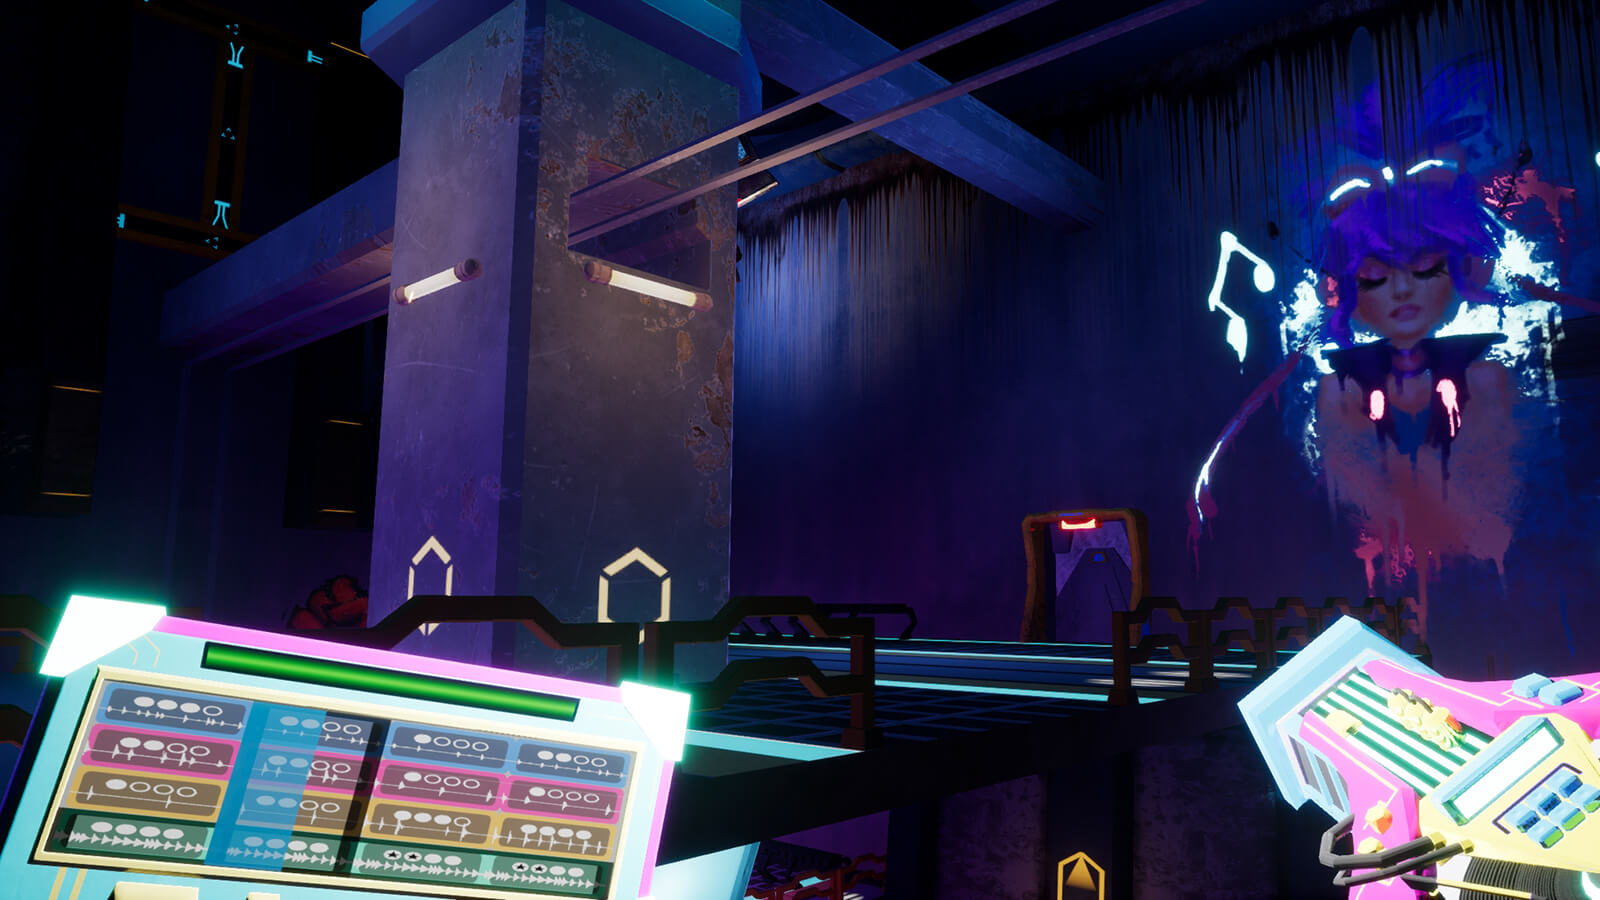 The player stands on a glowing platform facing colorful graffiti of a woman with purple hair and a music note.